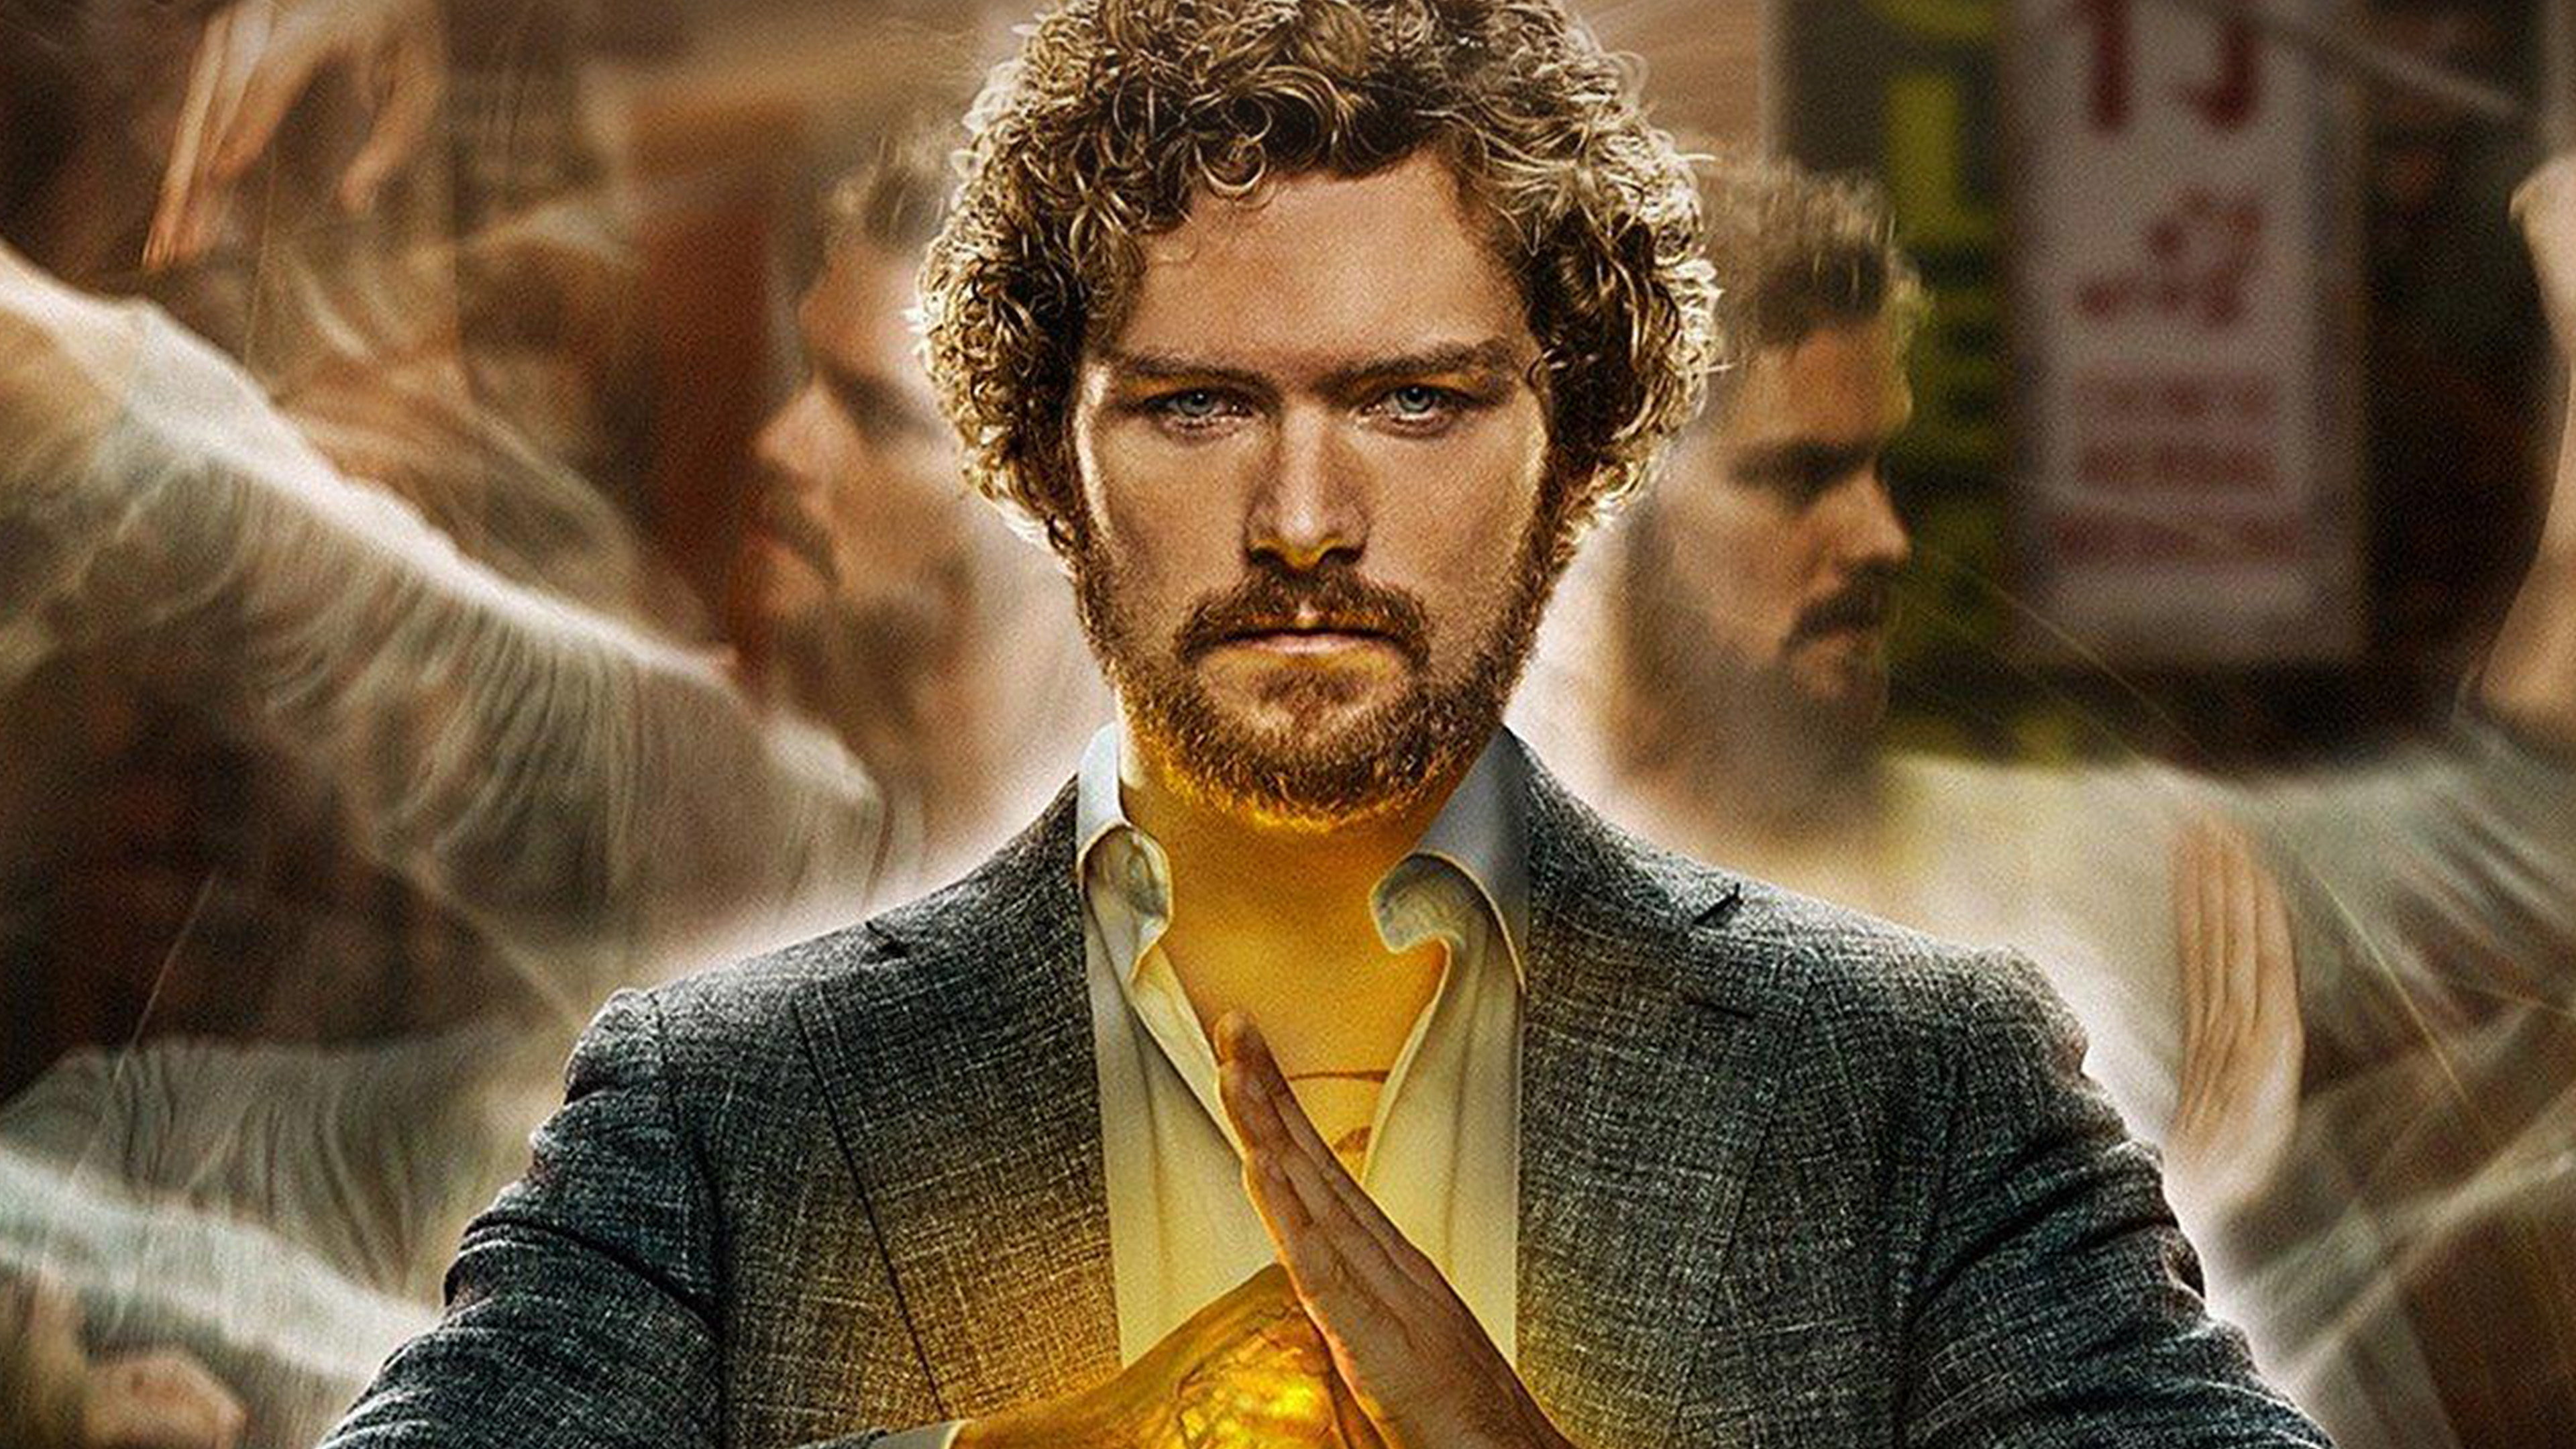 Algae L furthermore Papers Co Ay Ironfist Marvel Poster Film Illustration Art X K Wallpaper likewise  together with Jessica Henwick In Iron Fist X together with Marvel Cinematic Universe Artwork K. on iron fist iphone